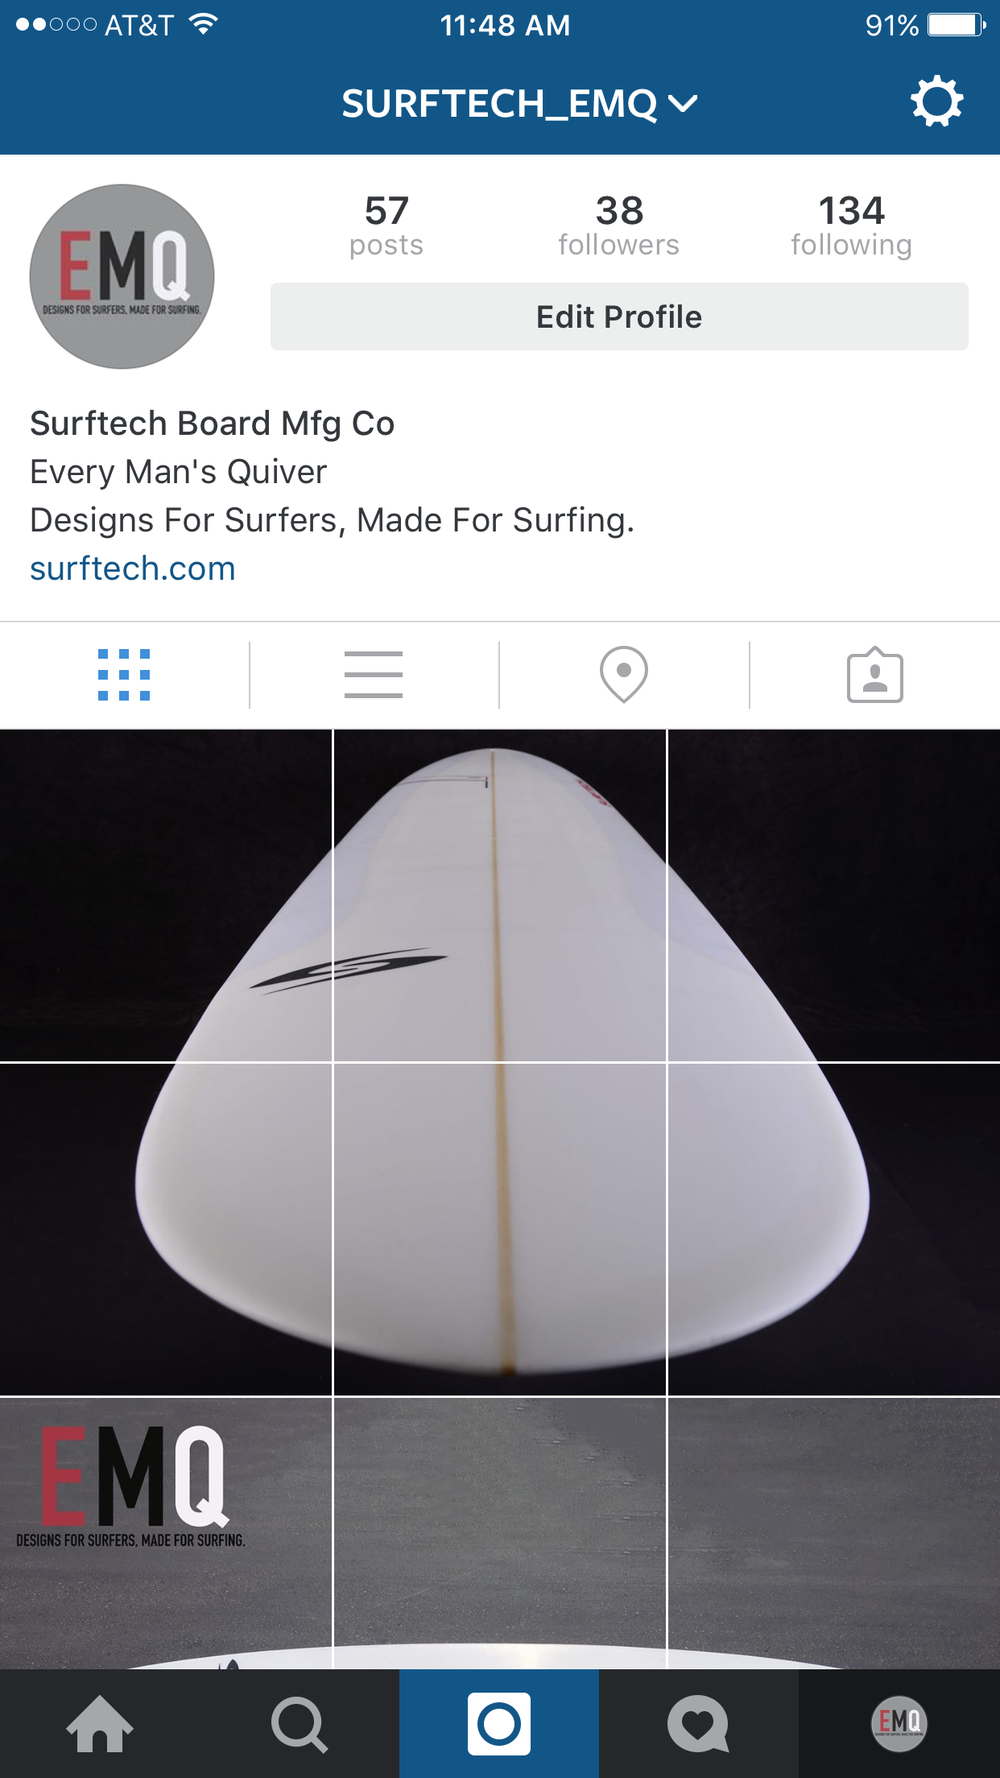 ACCOUNT FOR SURFTECH EVERY MAN'S QUIVER